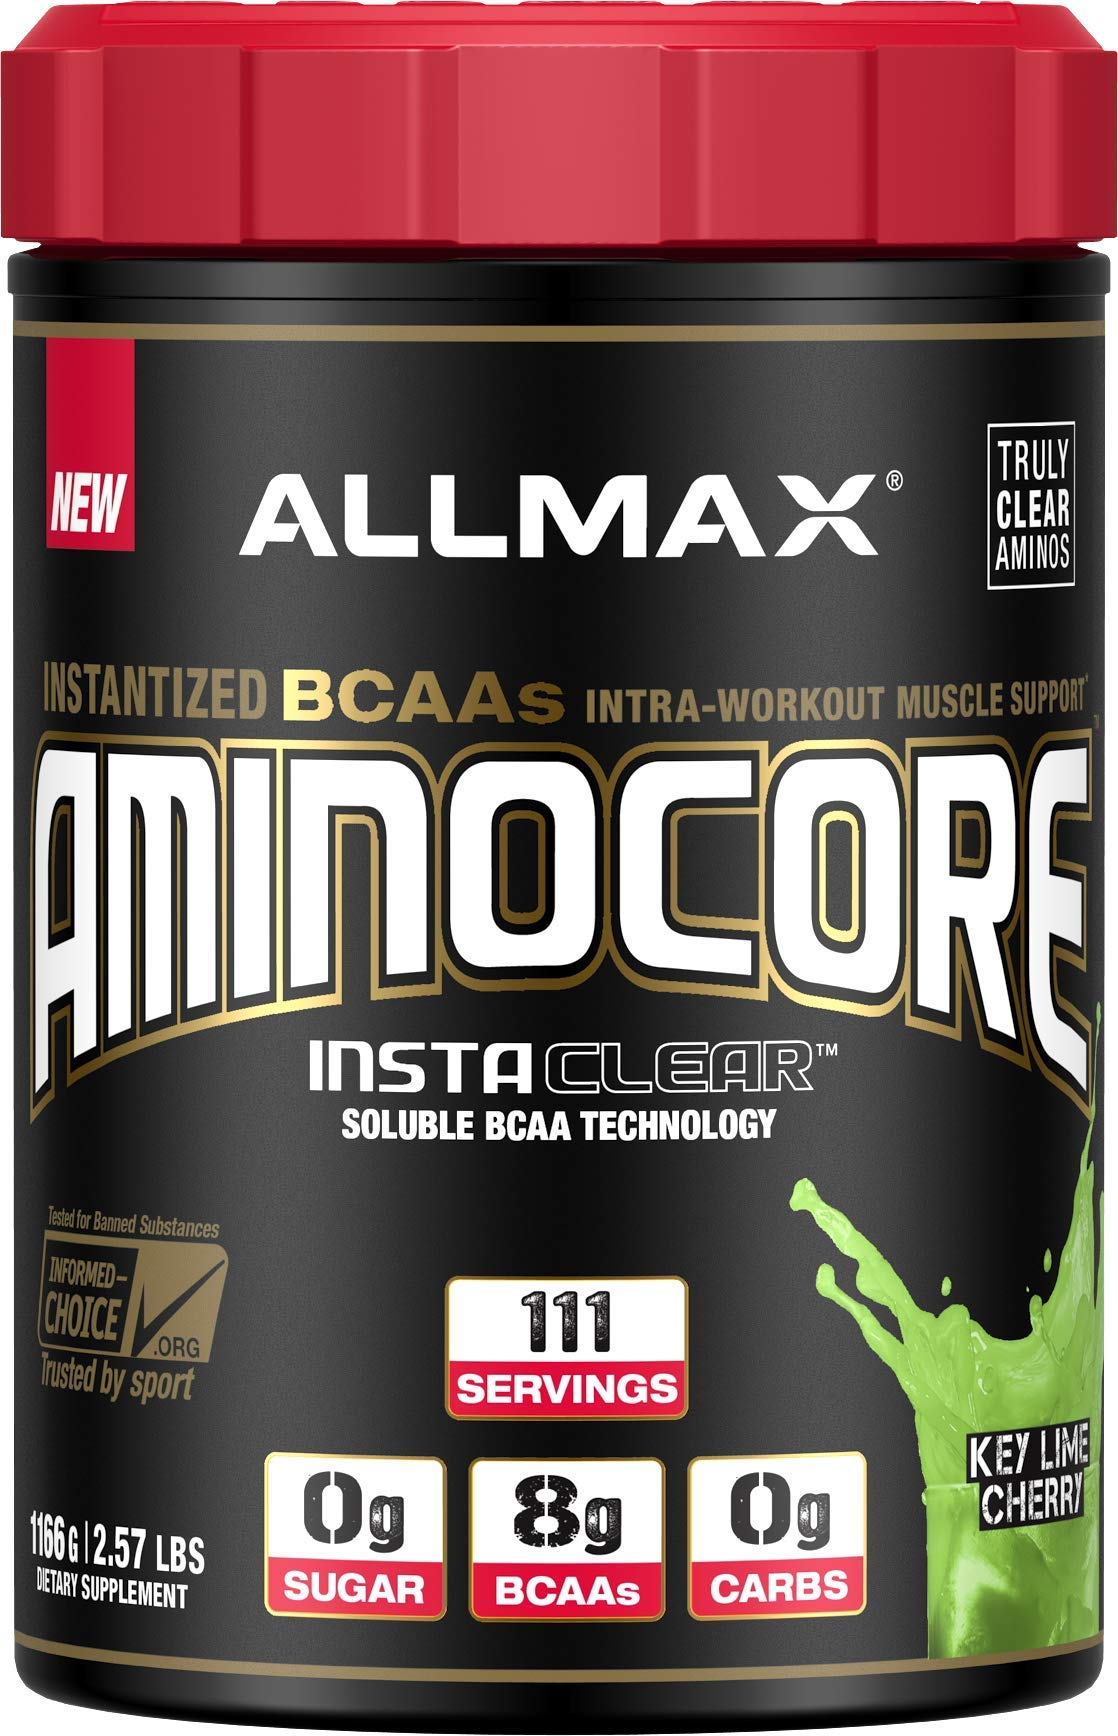 ALLMAX Nutrition Aminocore BCAAs, 100% Pure 45:30:25 Ratio, Key Lime Cherry, 1166 g